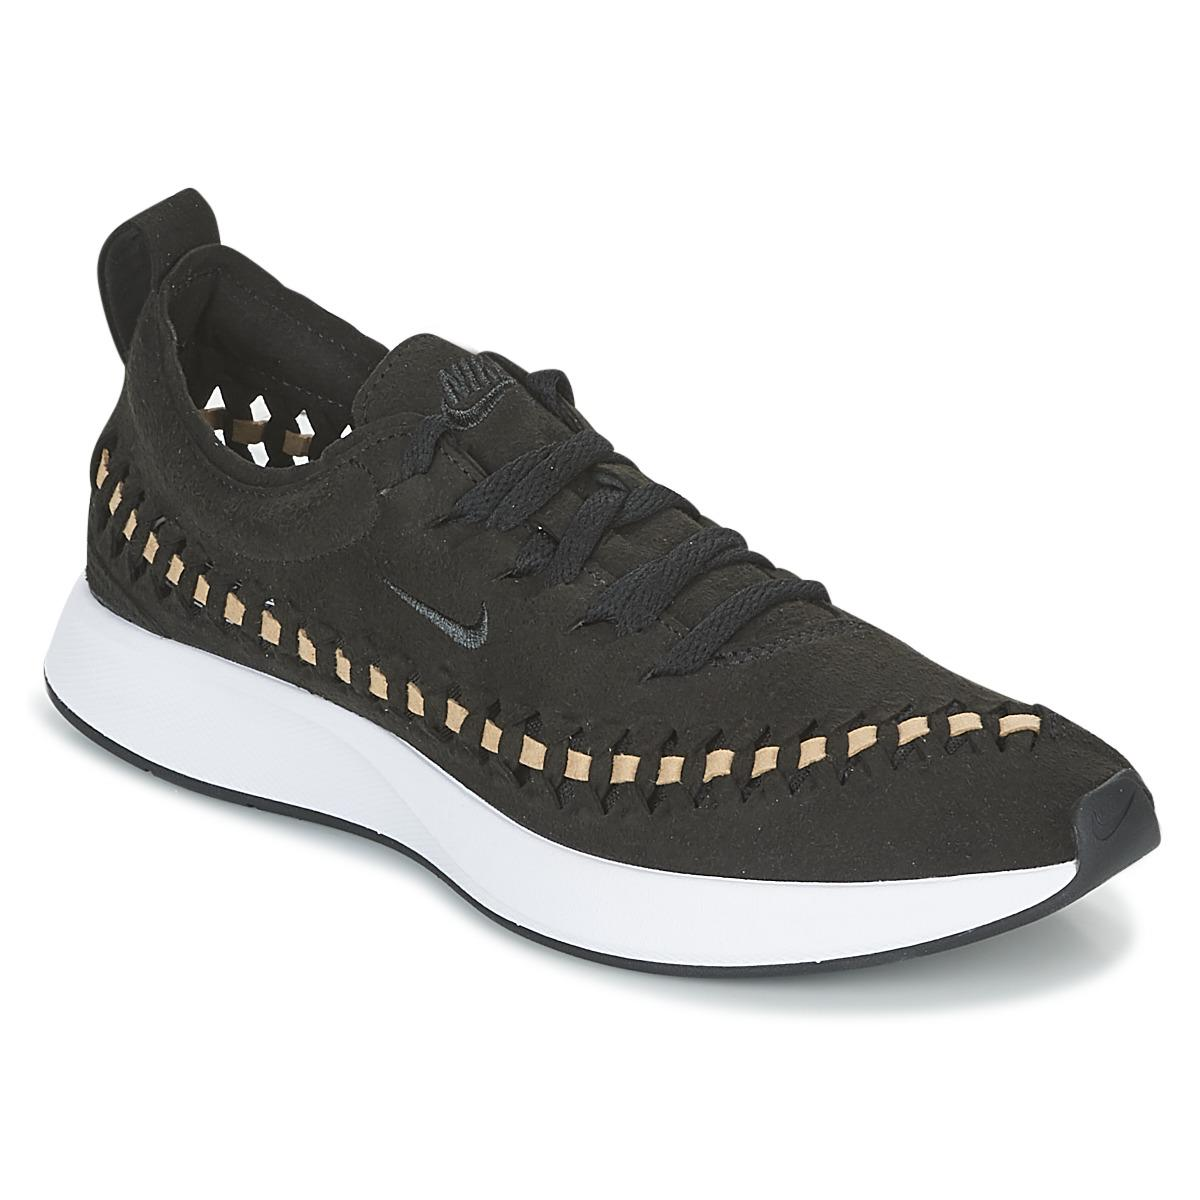 36927f8bbaf Nike Dualtone Racer Woven W Shoes (trainers) in Black - Lyst